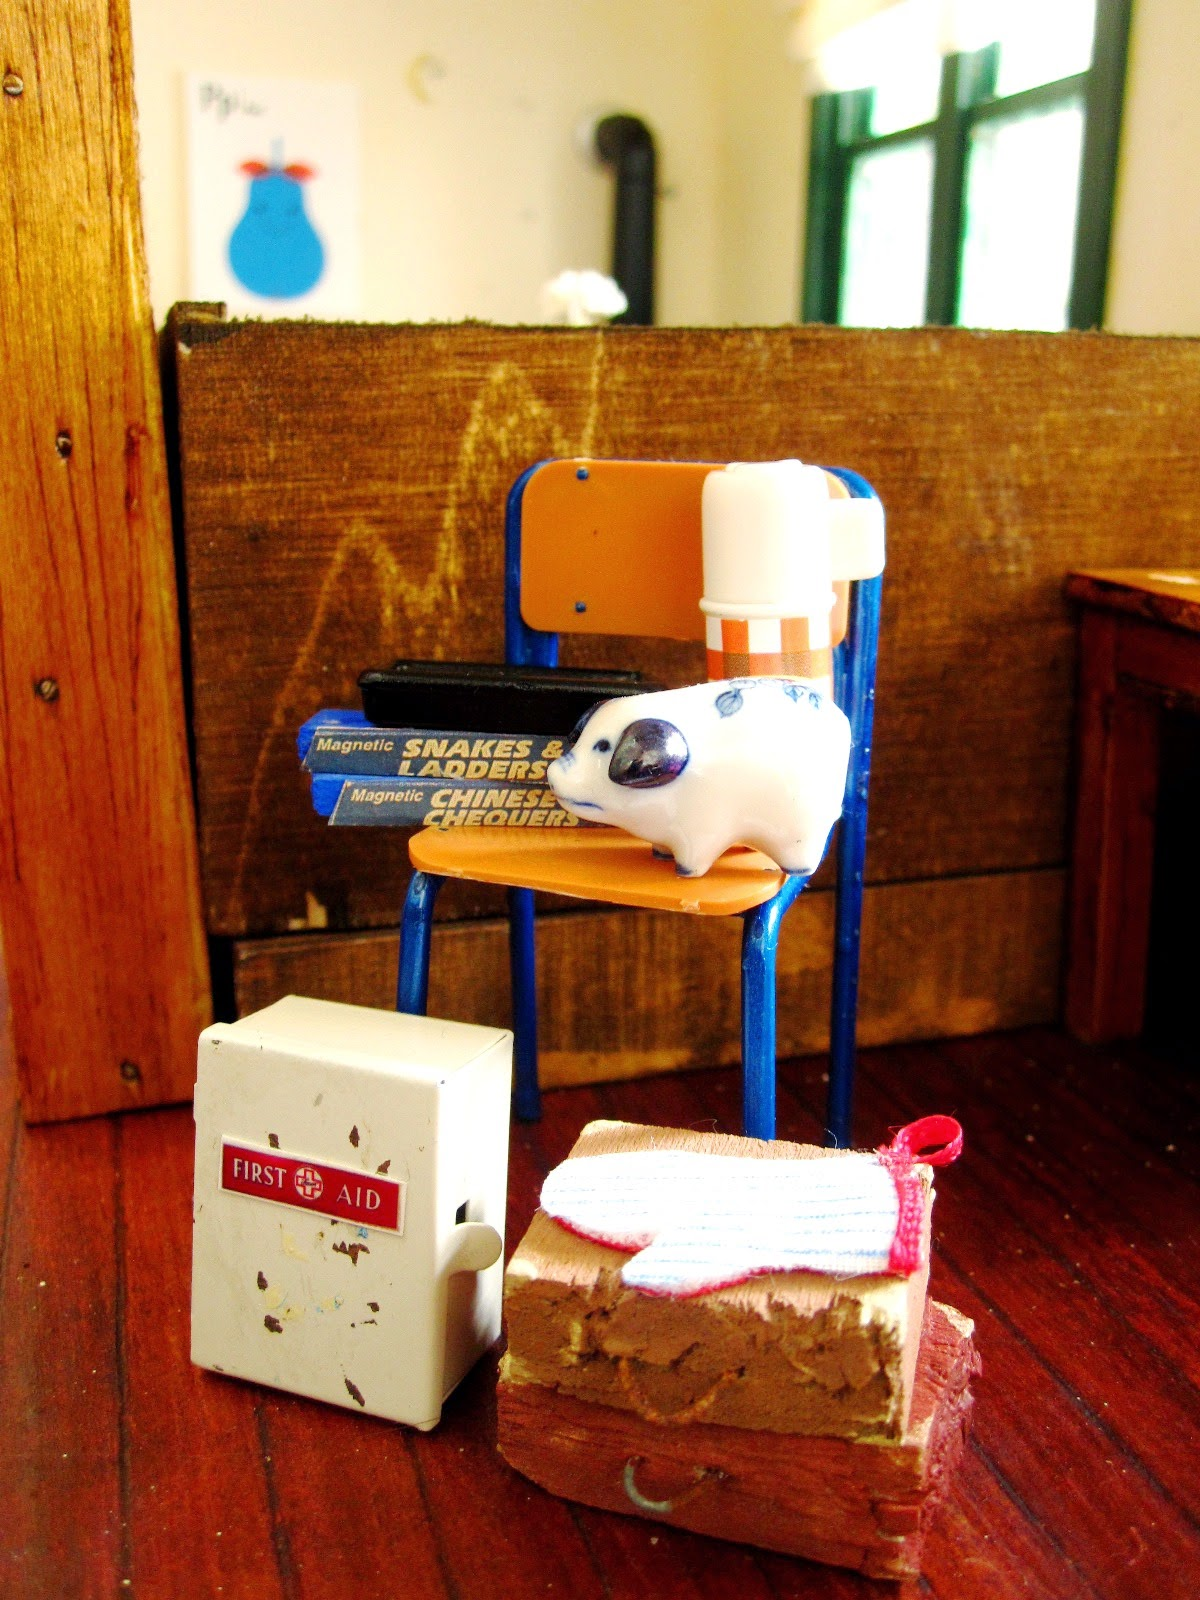 Selection of modern dolls house miniatures including a school chair with blue legs, an old first aid cupboard, two school cases, games of snakes and ladders and checkers, a blue and white piggy bank and a red checked flask.